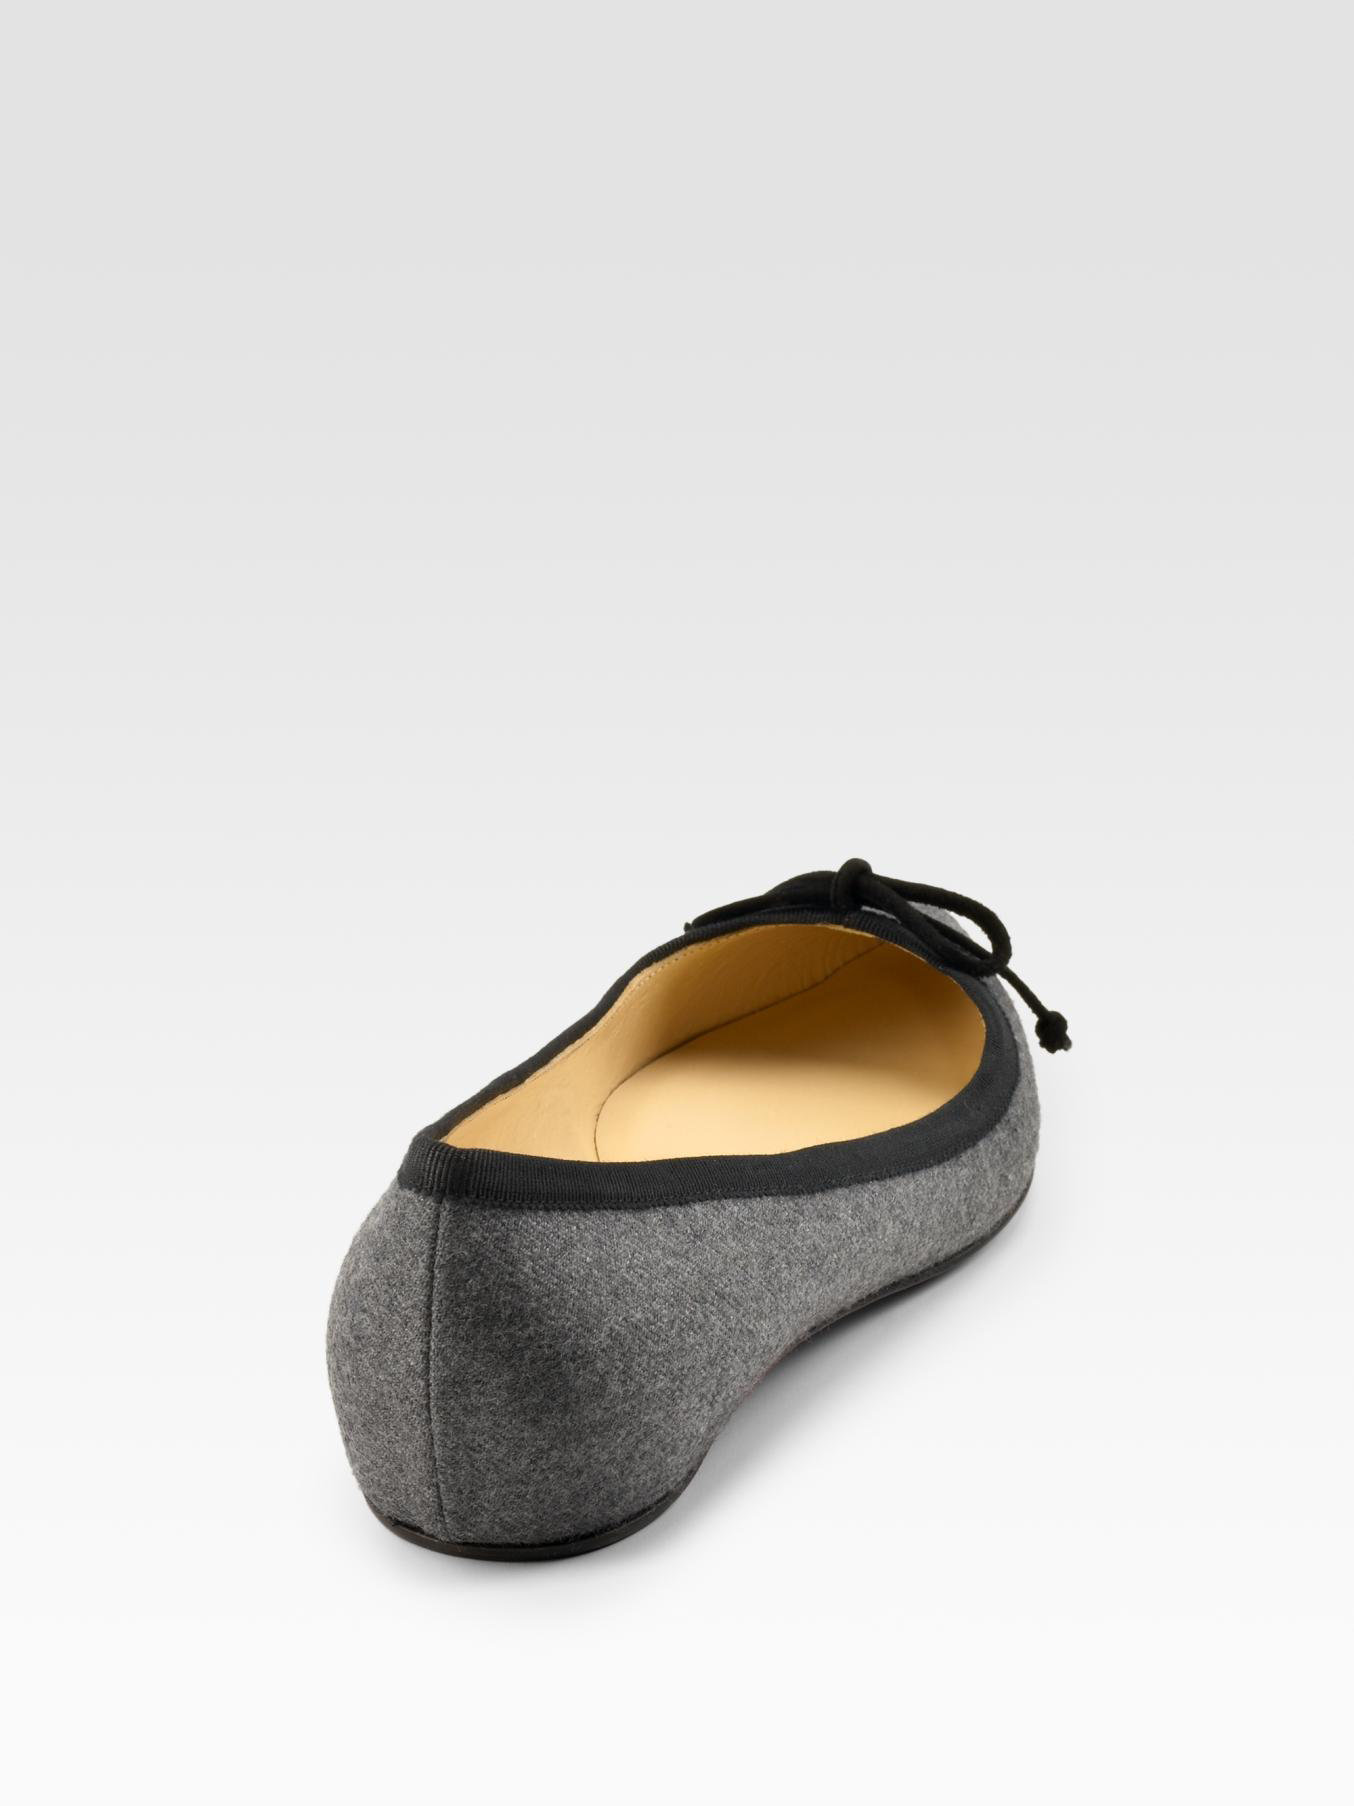 clearance shopping online outlet footlocker pictures Christian Louboutin Wool Ballet Flats wholesale price cheap price outlet looking for GJbRJai747